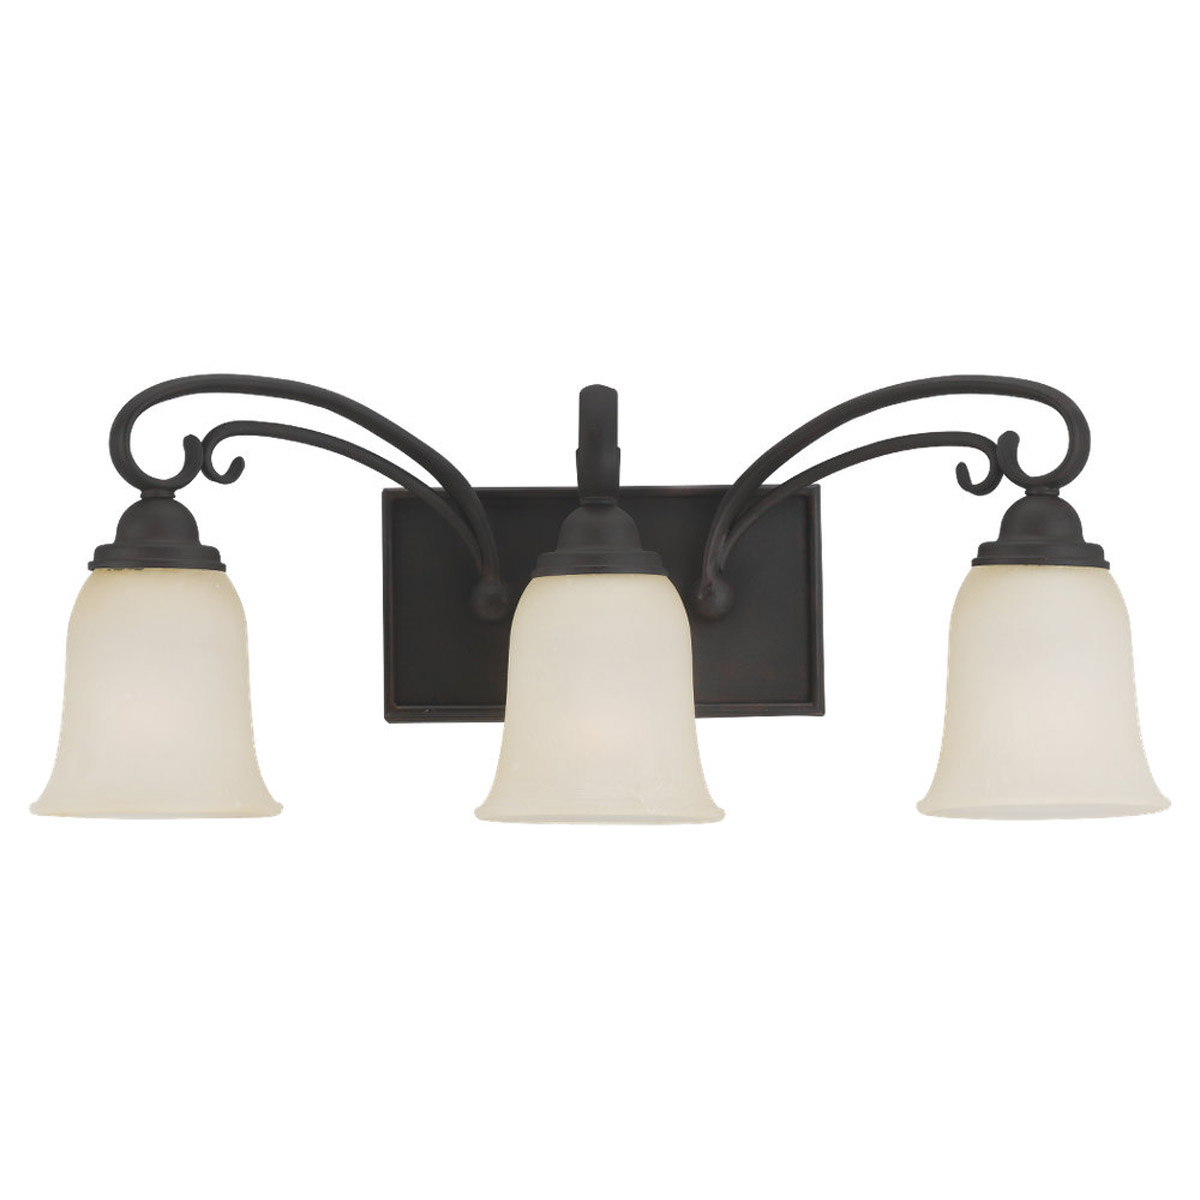 Sea Gull Lighting Del Prato 3 Light Wall / Bath / Vanity in Misted Bronze 44123-814